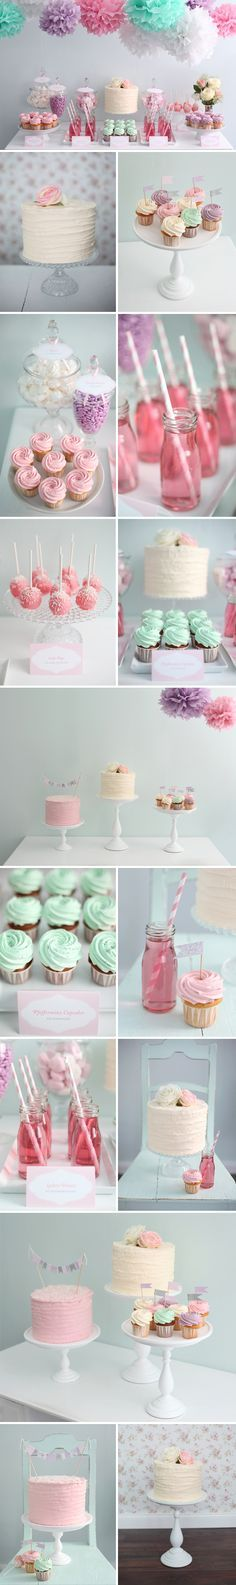 This could be a cute 1st birthday for your baby girl! ;)